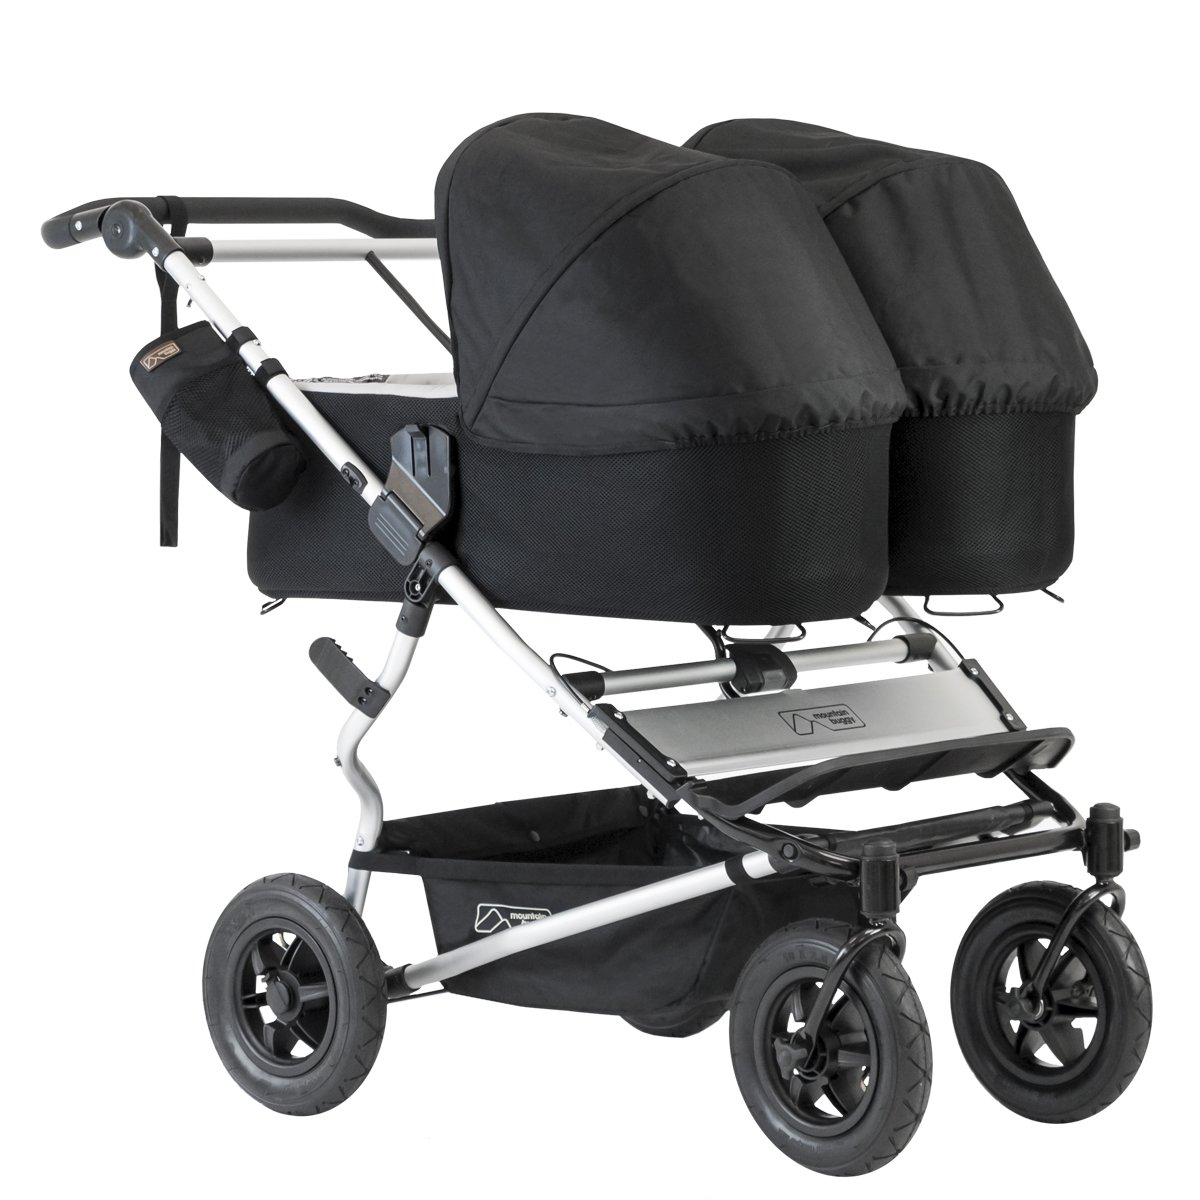 Mountain Buggy Duet 2016 Double Stroller, Black by Mountain Buggy (Image #13)